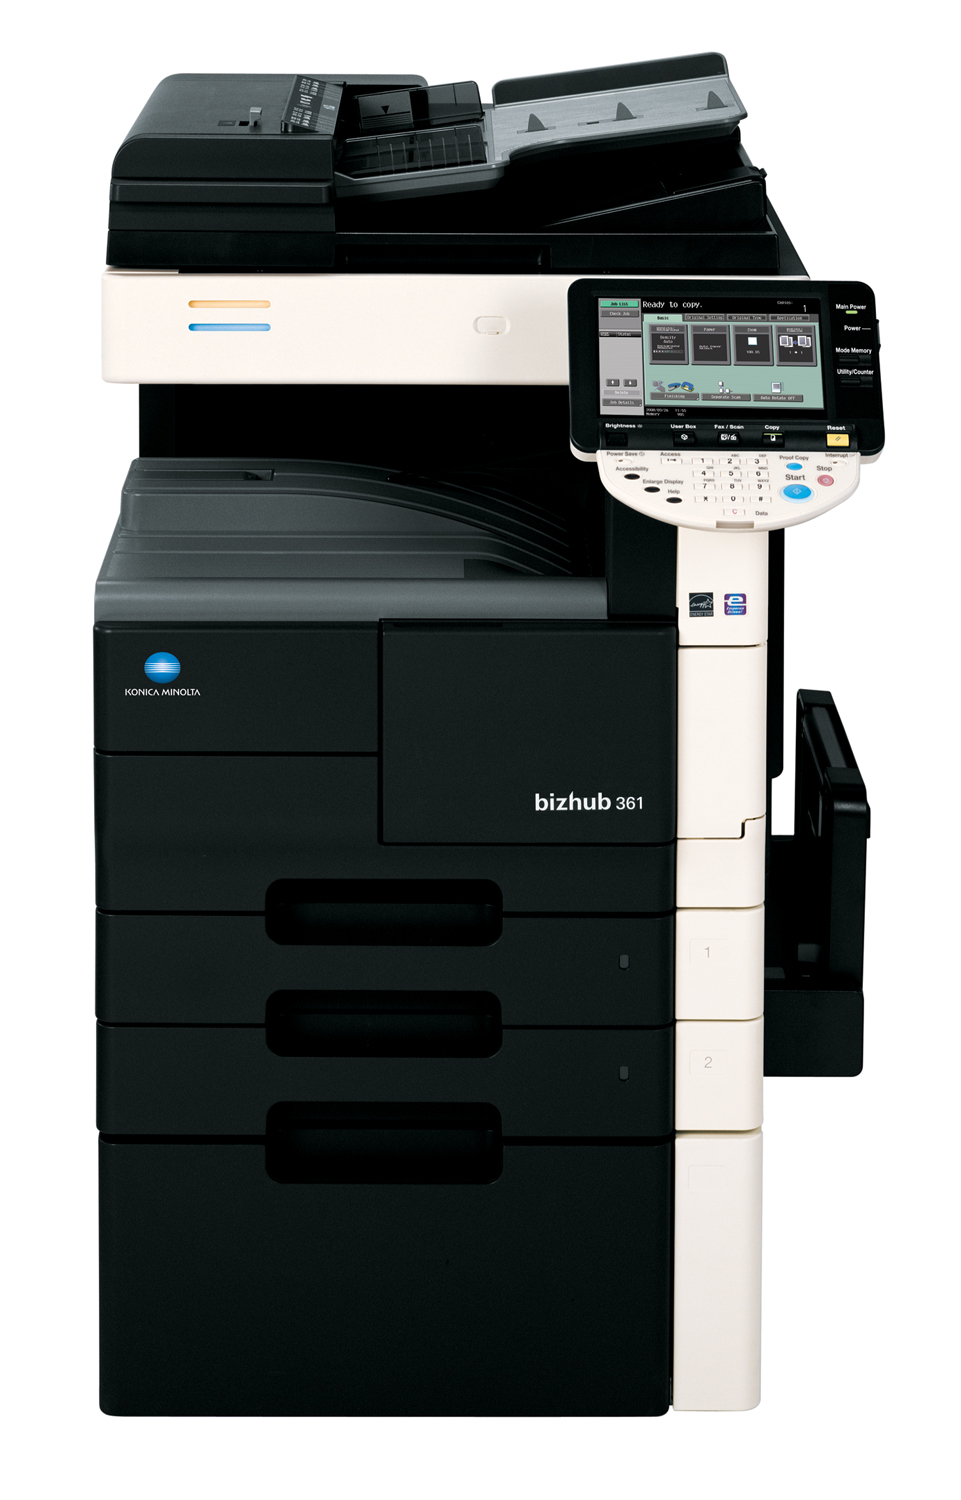 Konica Minolta Launches bizhub 361